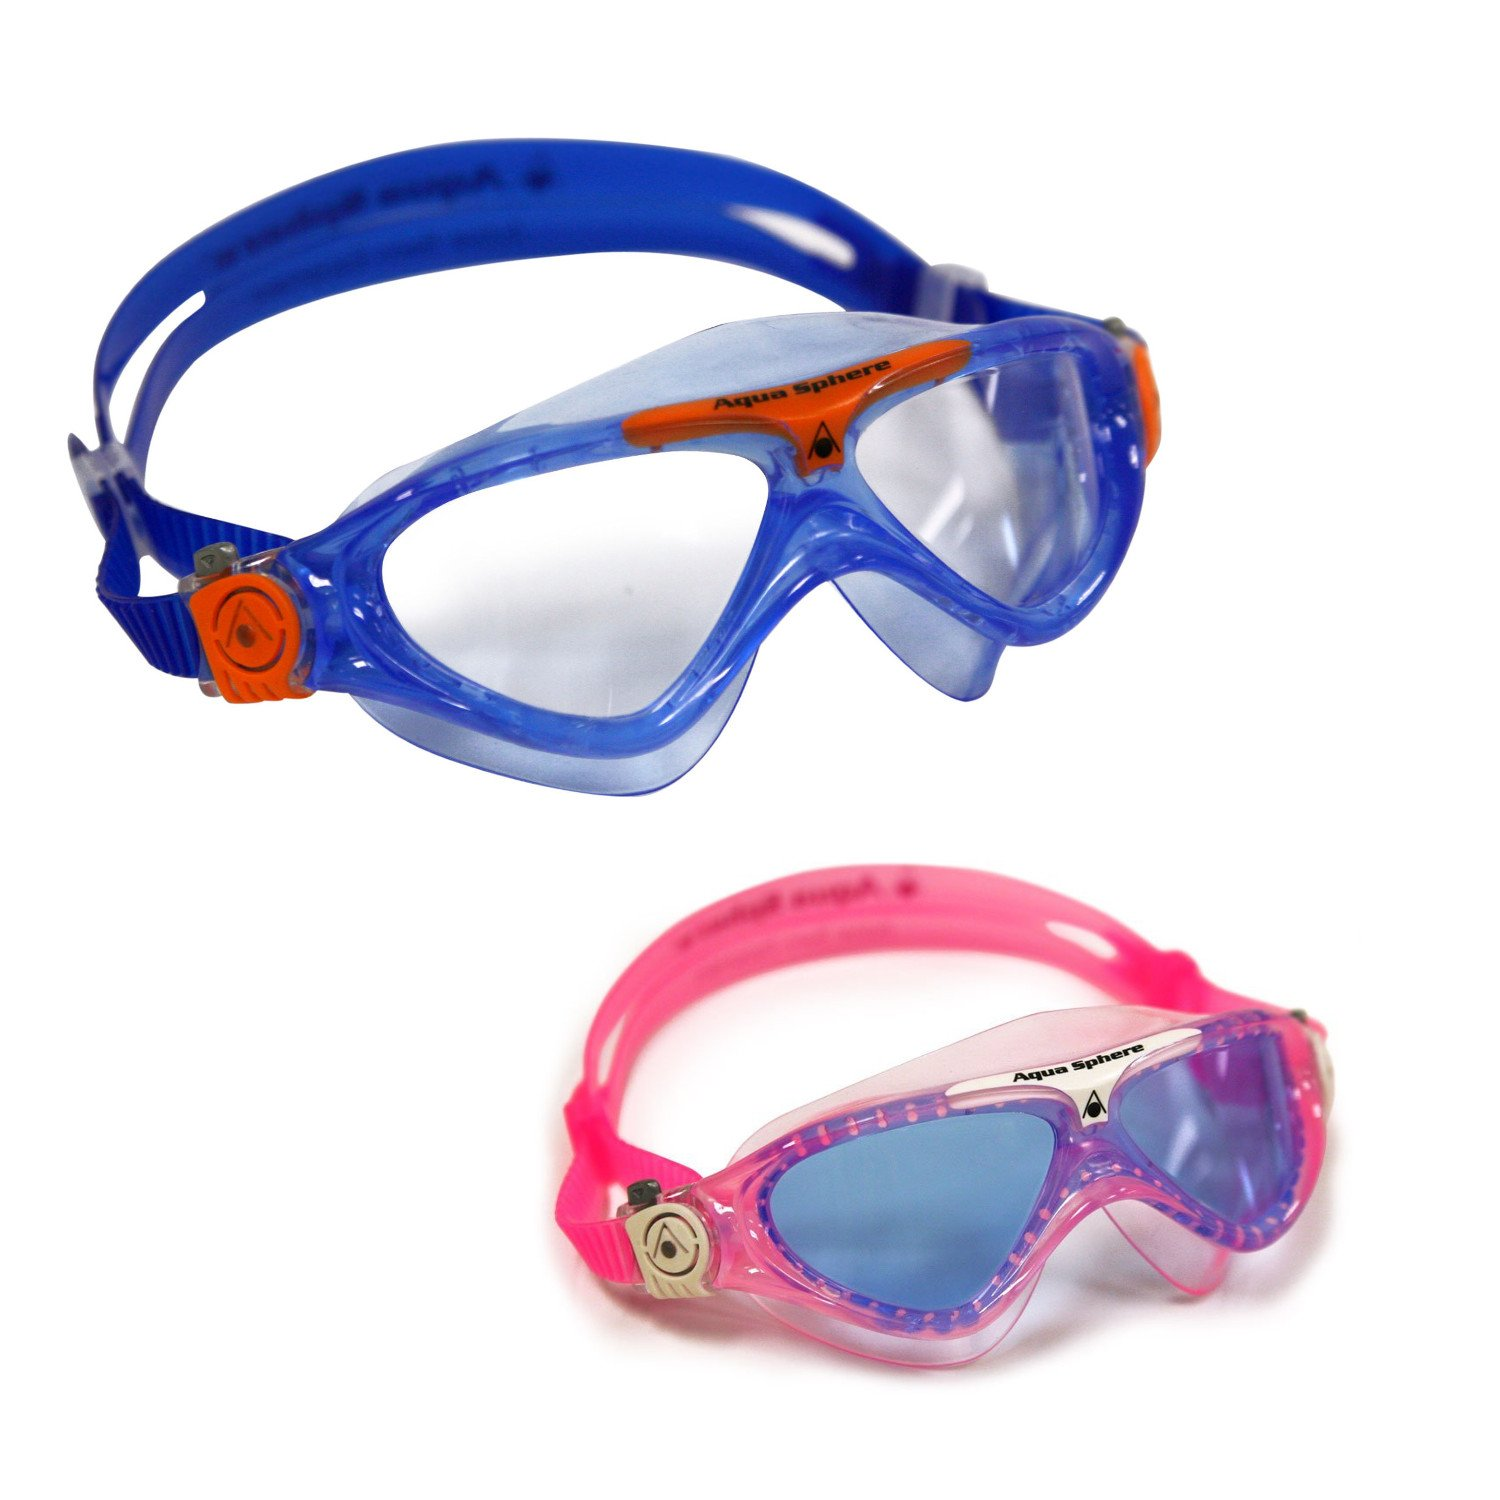 eeebe2ef4e6 Amazon.com   Aqua Sphere Vista Junior 2 Pack Swim Goggles   Sports    Outdoors